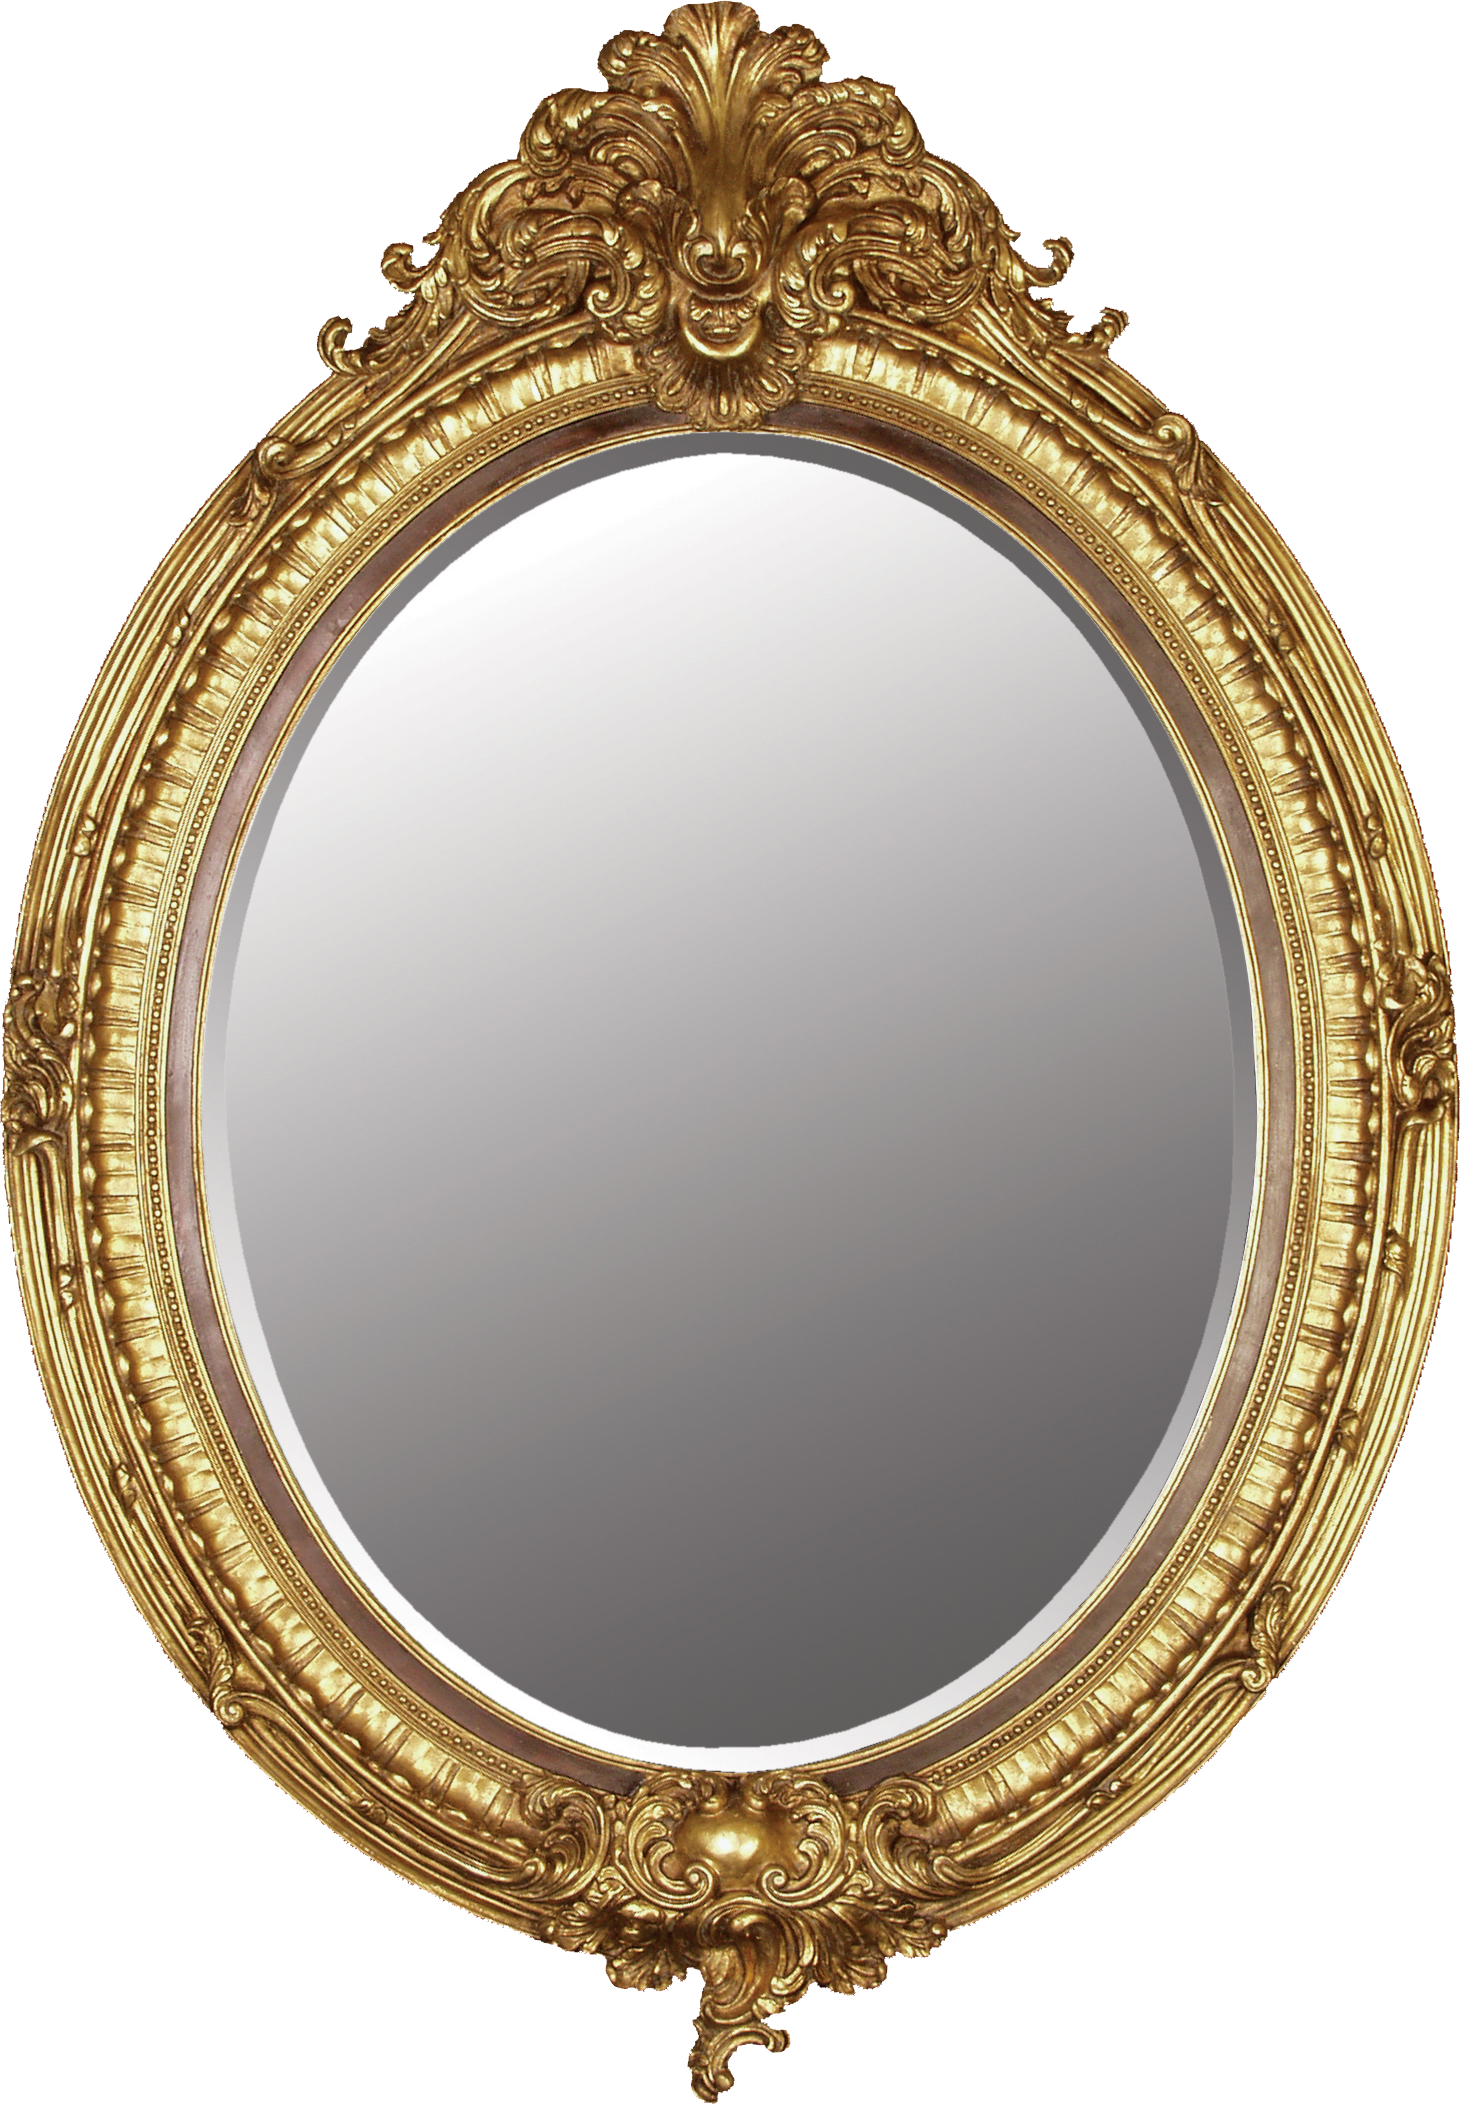 Clear ornament png. Mirror image purepng free